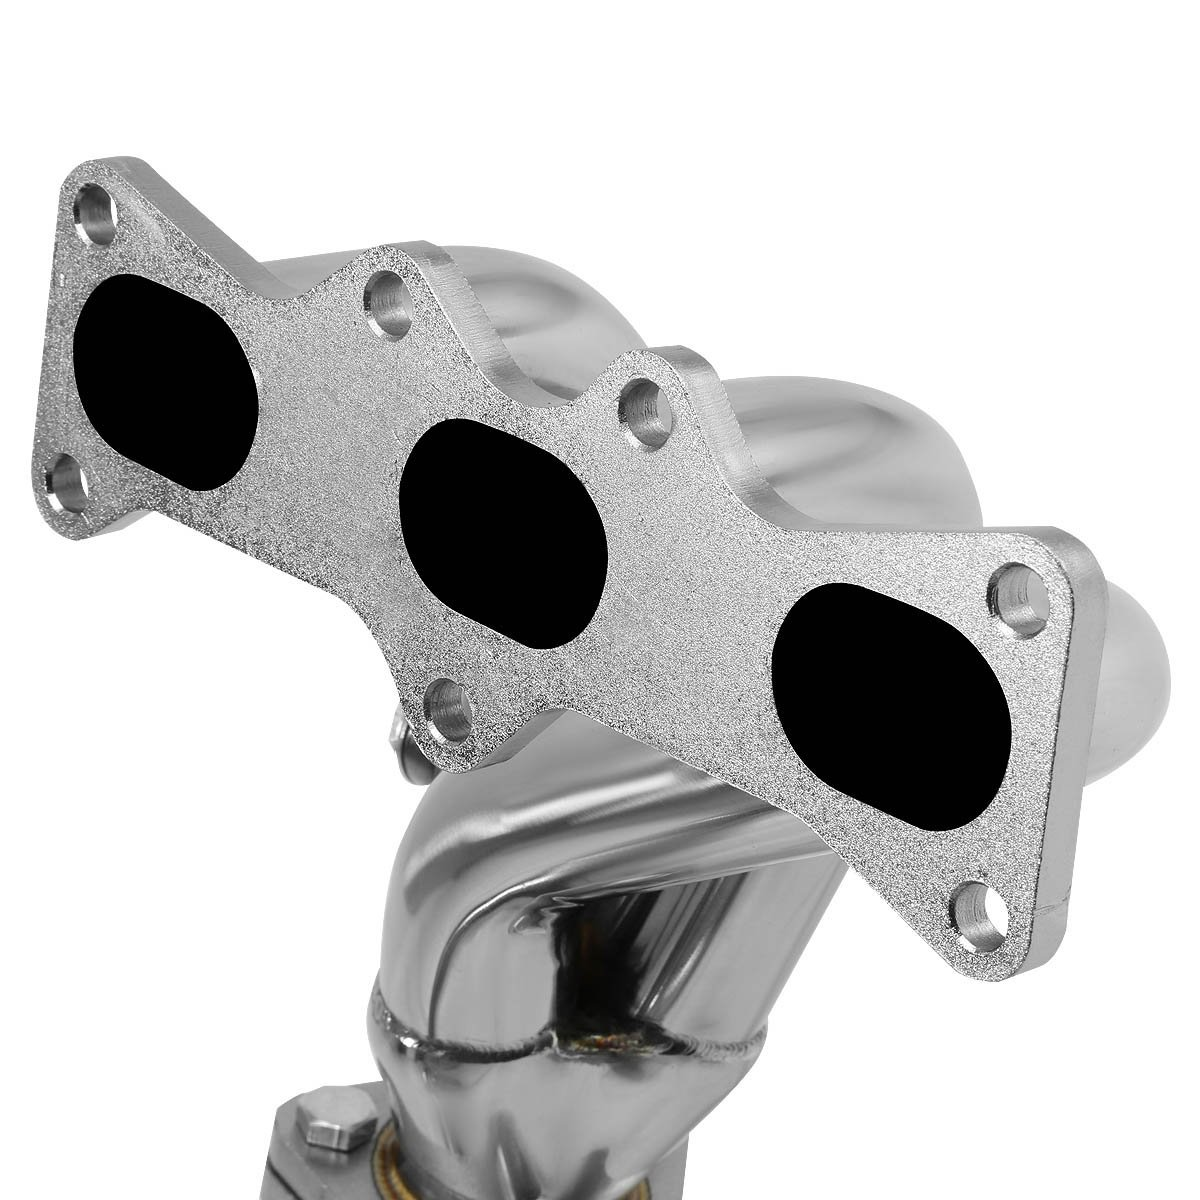 6-2-1 STAINLESS STEEL MANIFOLD HEADER//EXHAUST 93-97 FORD PROBE//MAZDA MX6 MX-6